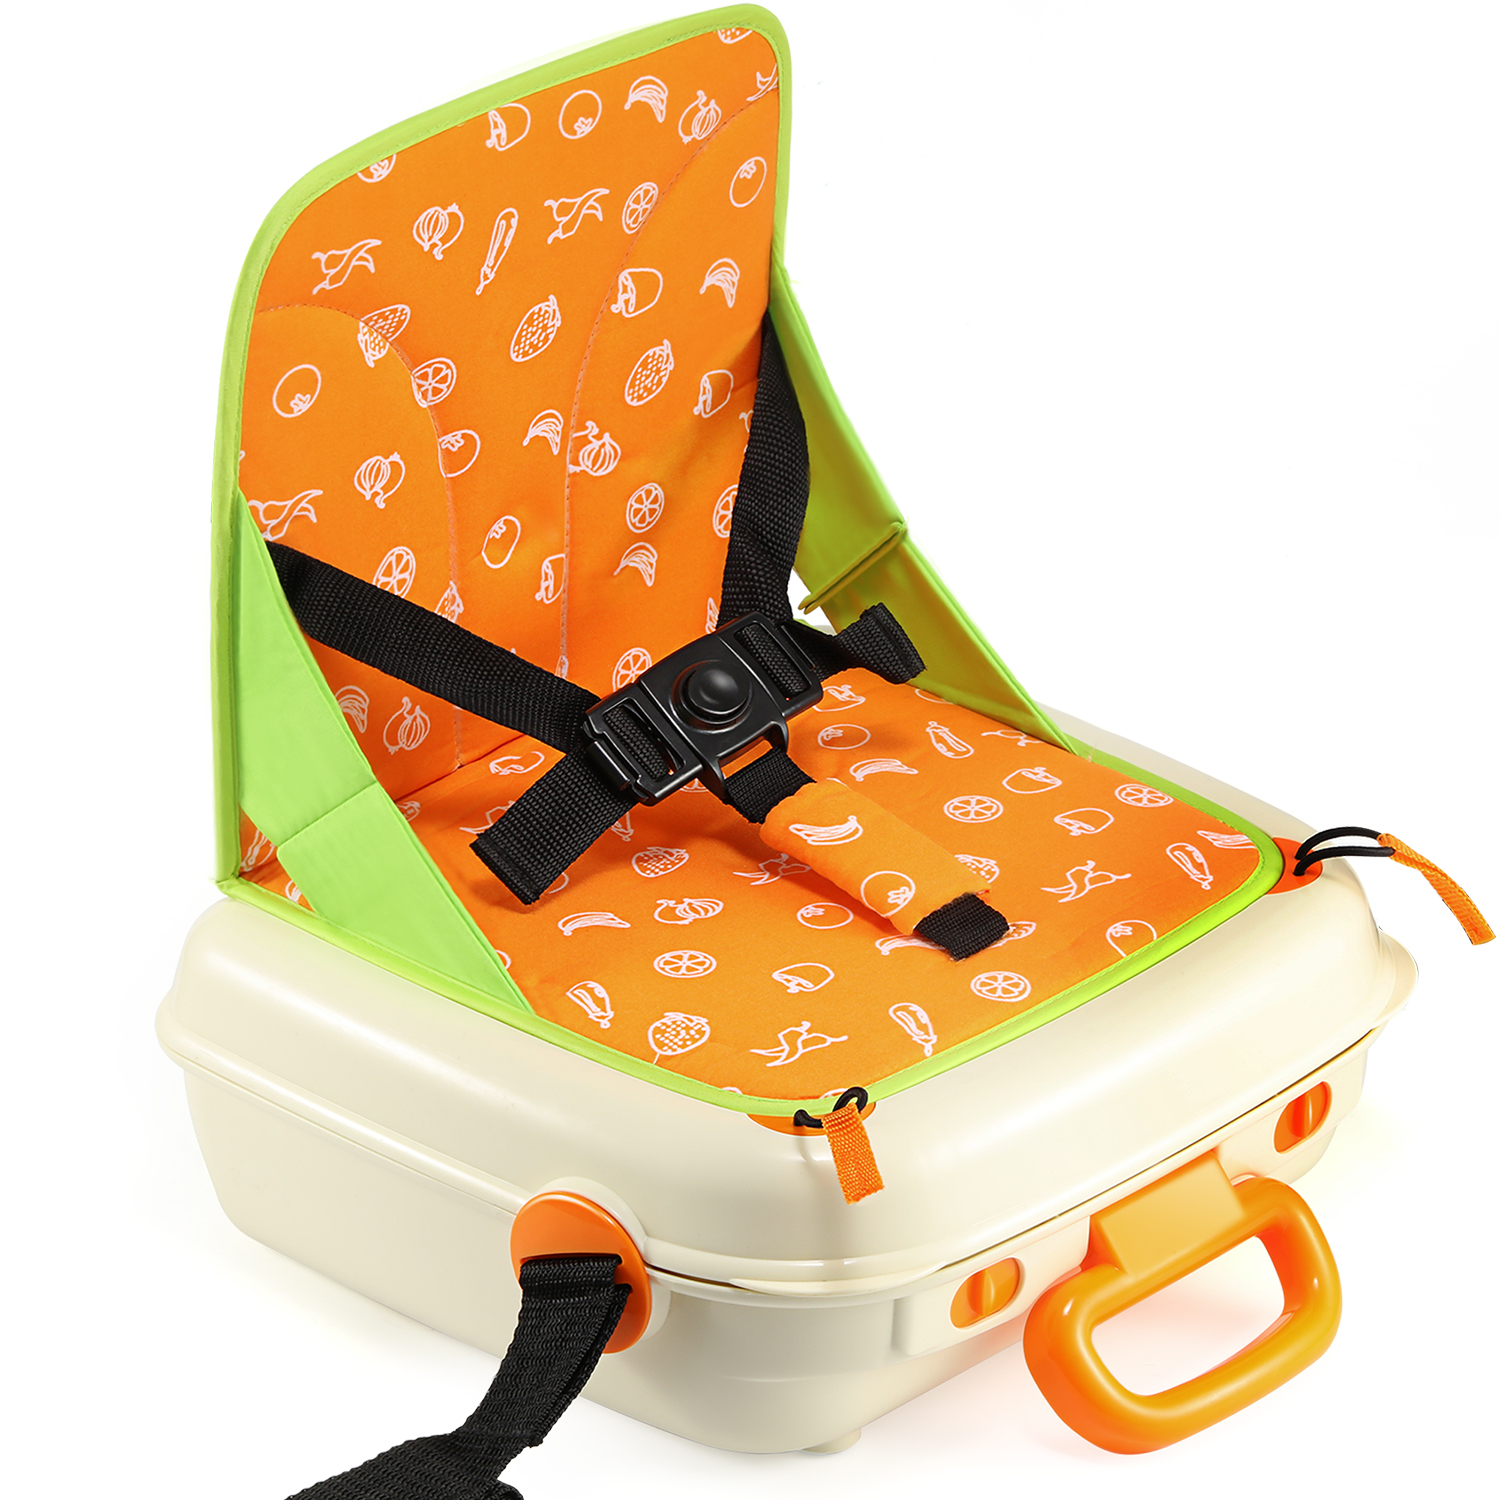 toddler high chair booster seat covers for leather dining chairs portable travel baby kids feeding